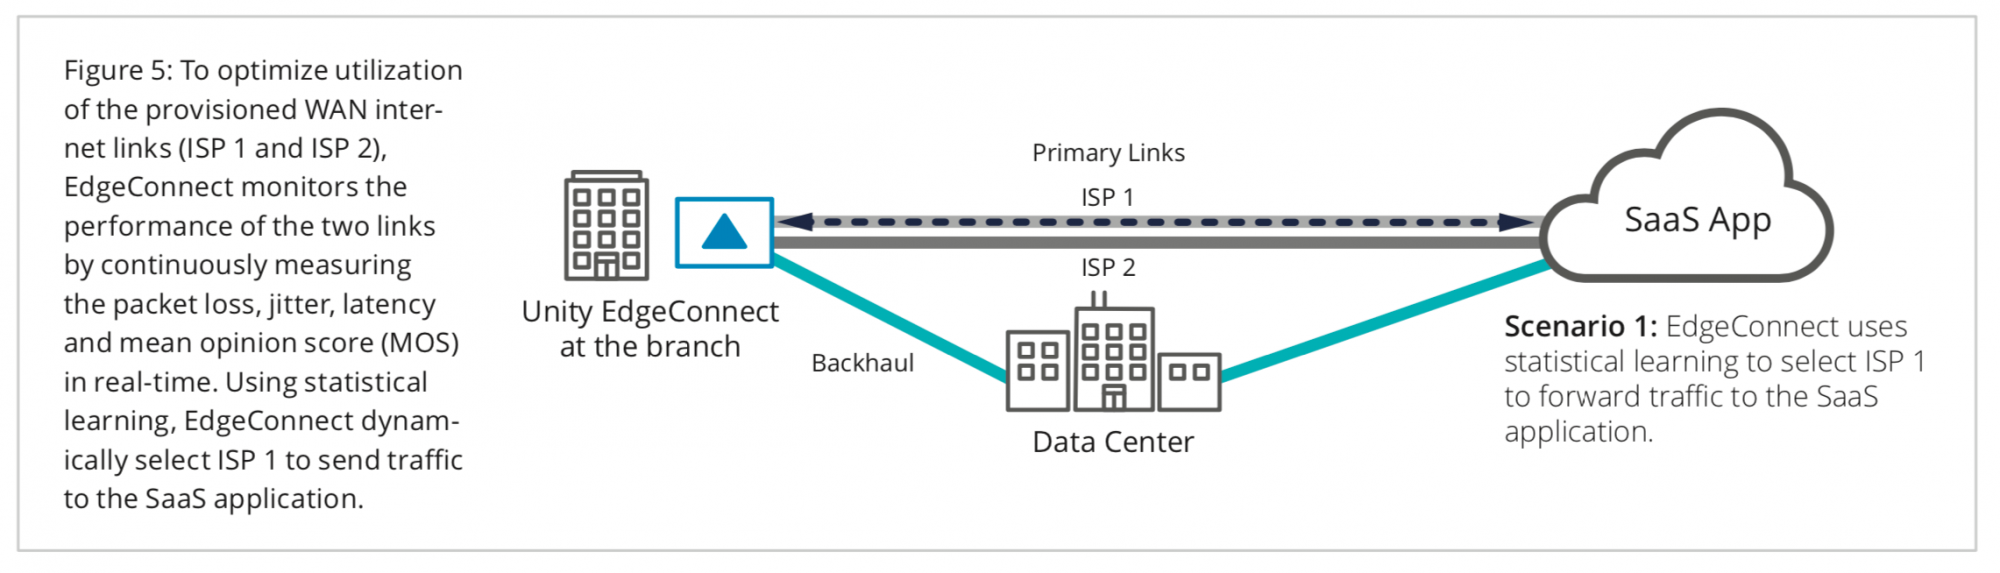 Figure 5: To optimize utilization of the provisioned WAN internet links (ISP 1 and ISP 2), EdgeConnect monitors the performance of the two links by continuously measuring the packet loss, jitter, latency and mean opinion score (MOS) in real-time. Using statistical learning, EdgeConnect dynamically select ISP 1 to send traffic to the SaaS application.